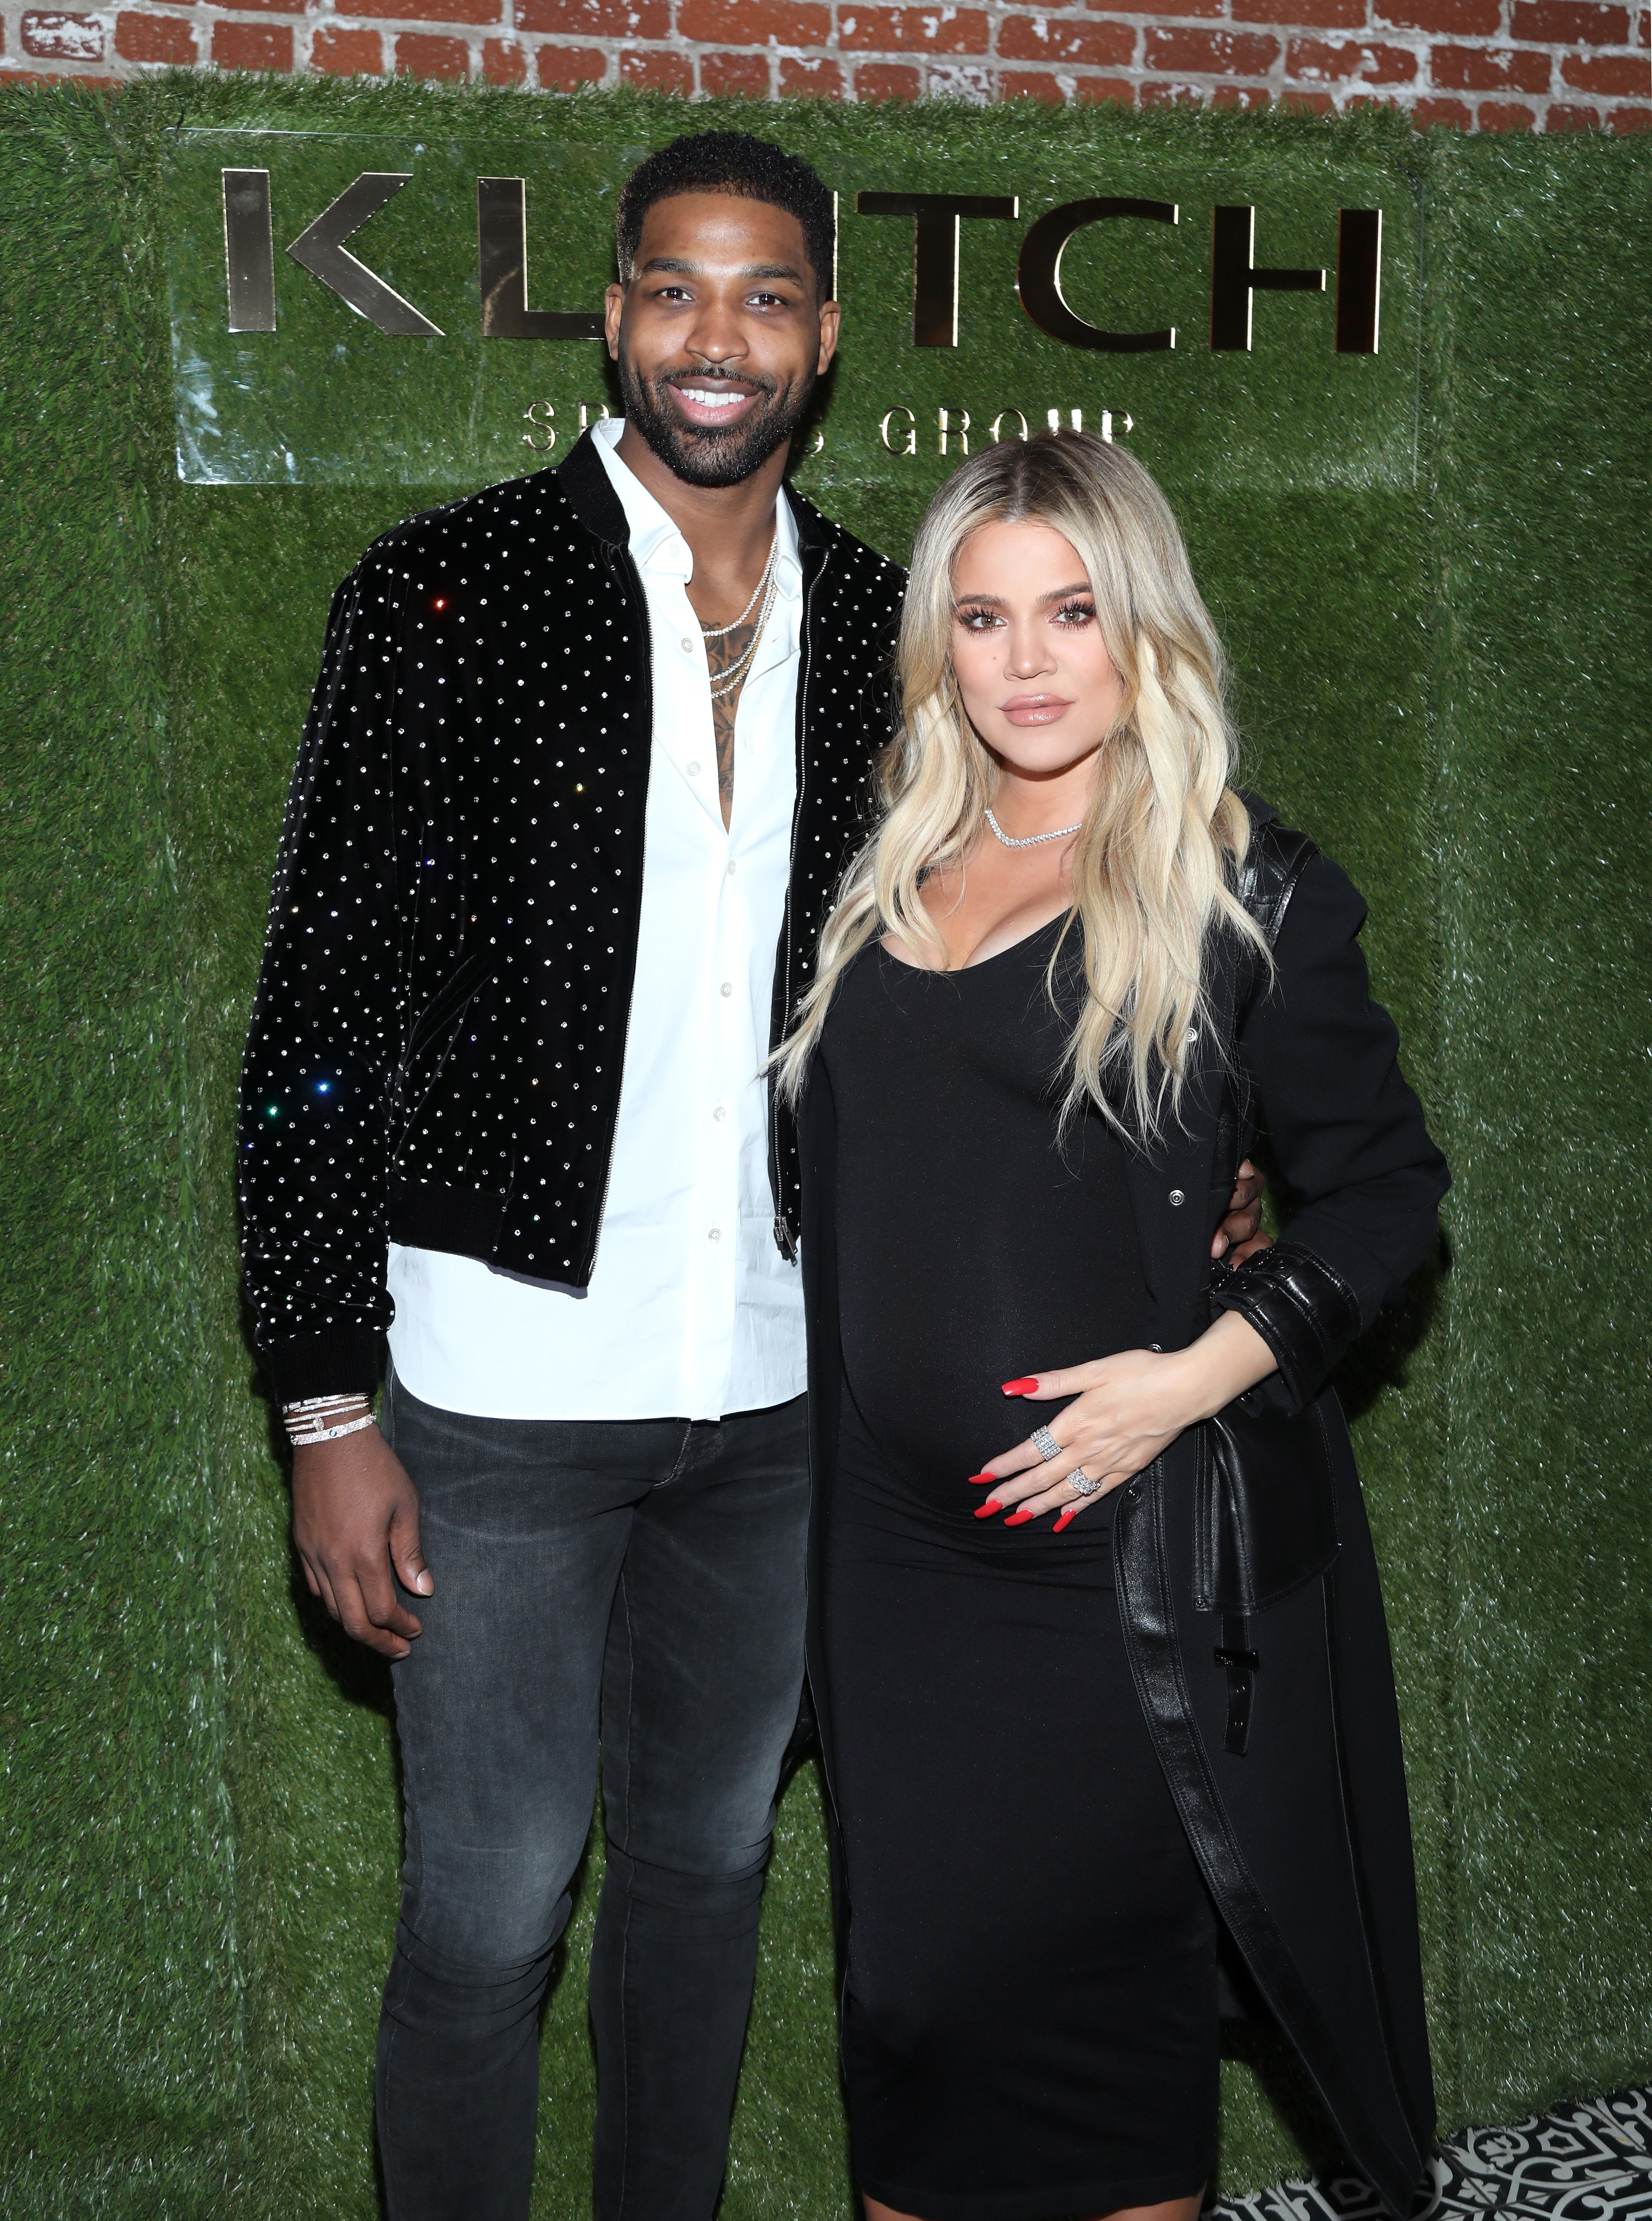 A pregnant Khloe Kardashian and Tristan Thompson at a Klutch Sports event in L.A., February, 2017. | Photo: Getty Images.